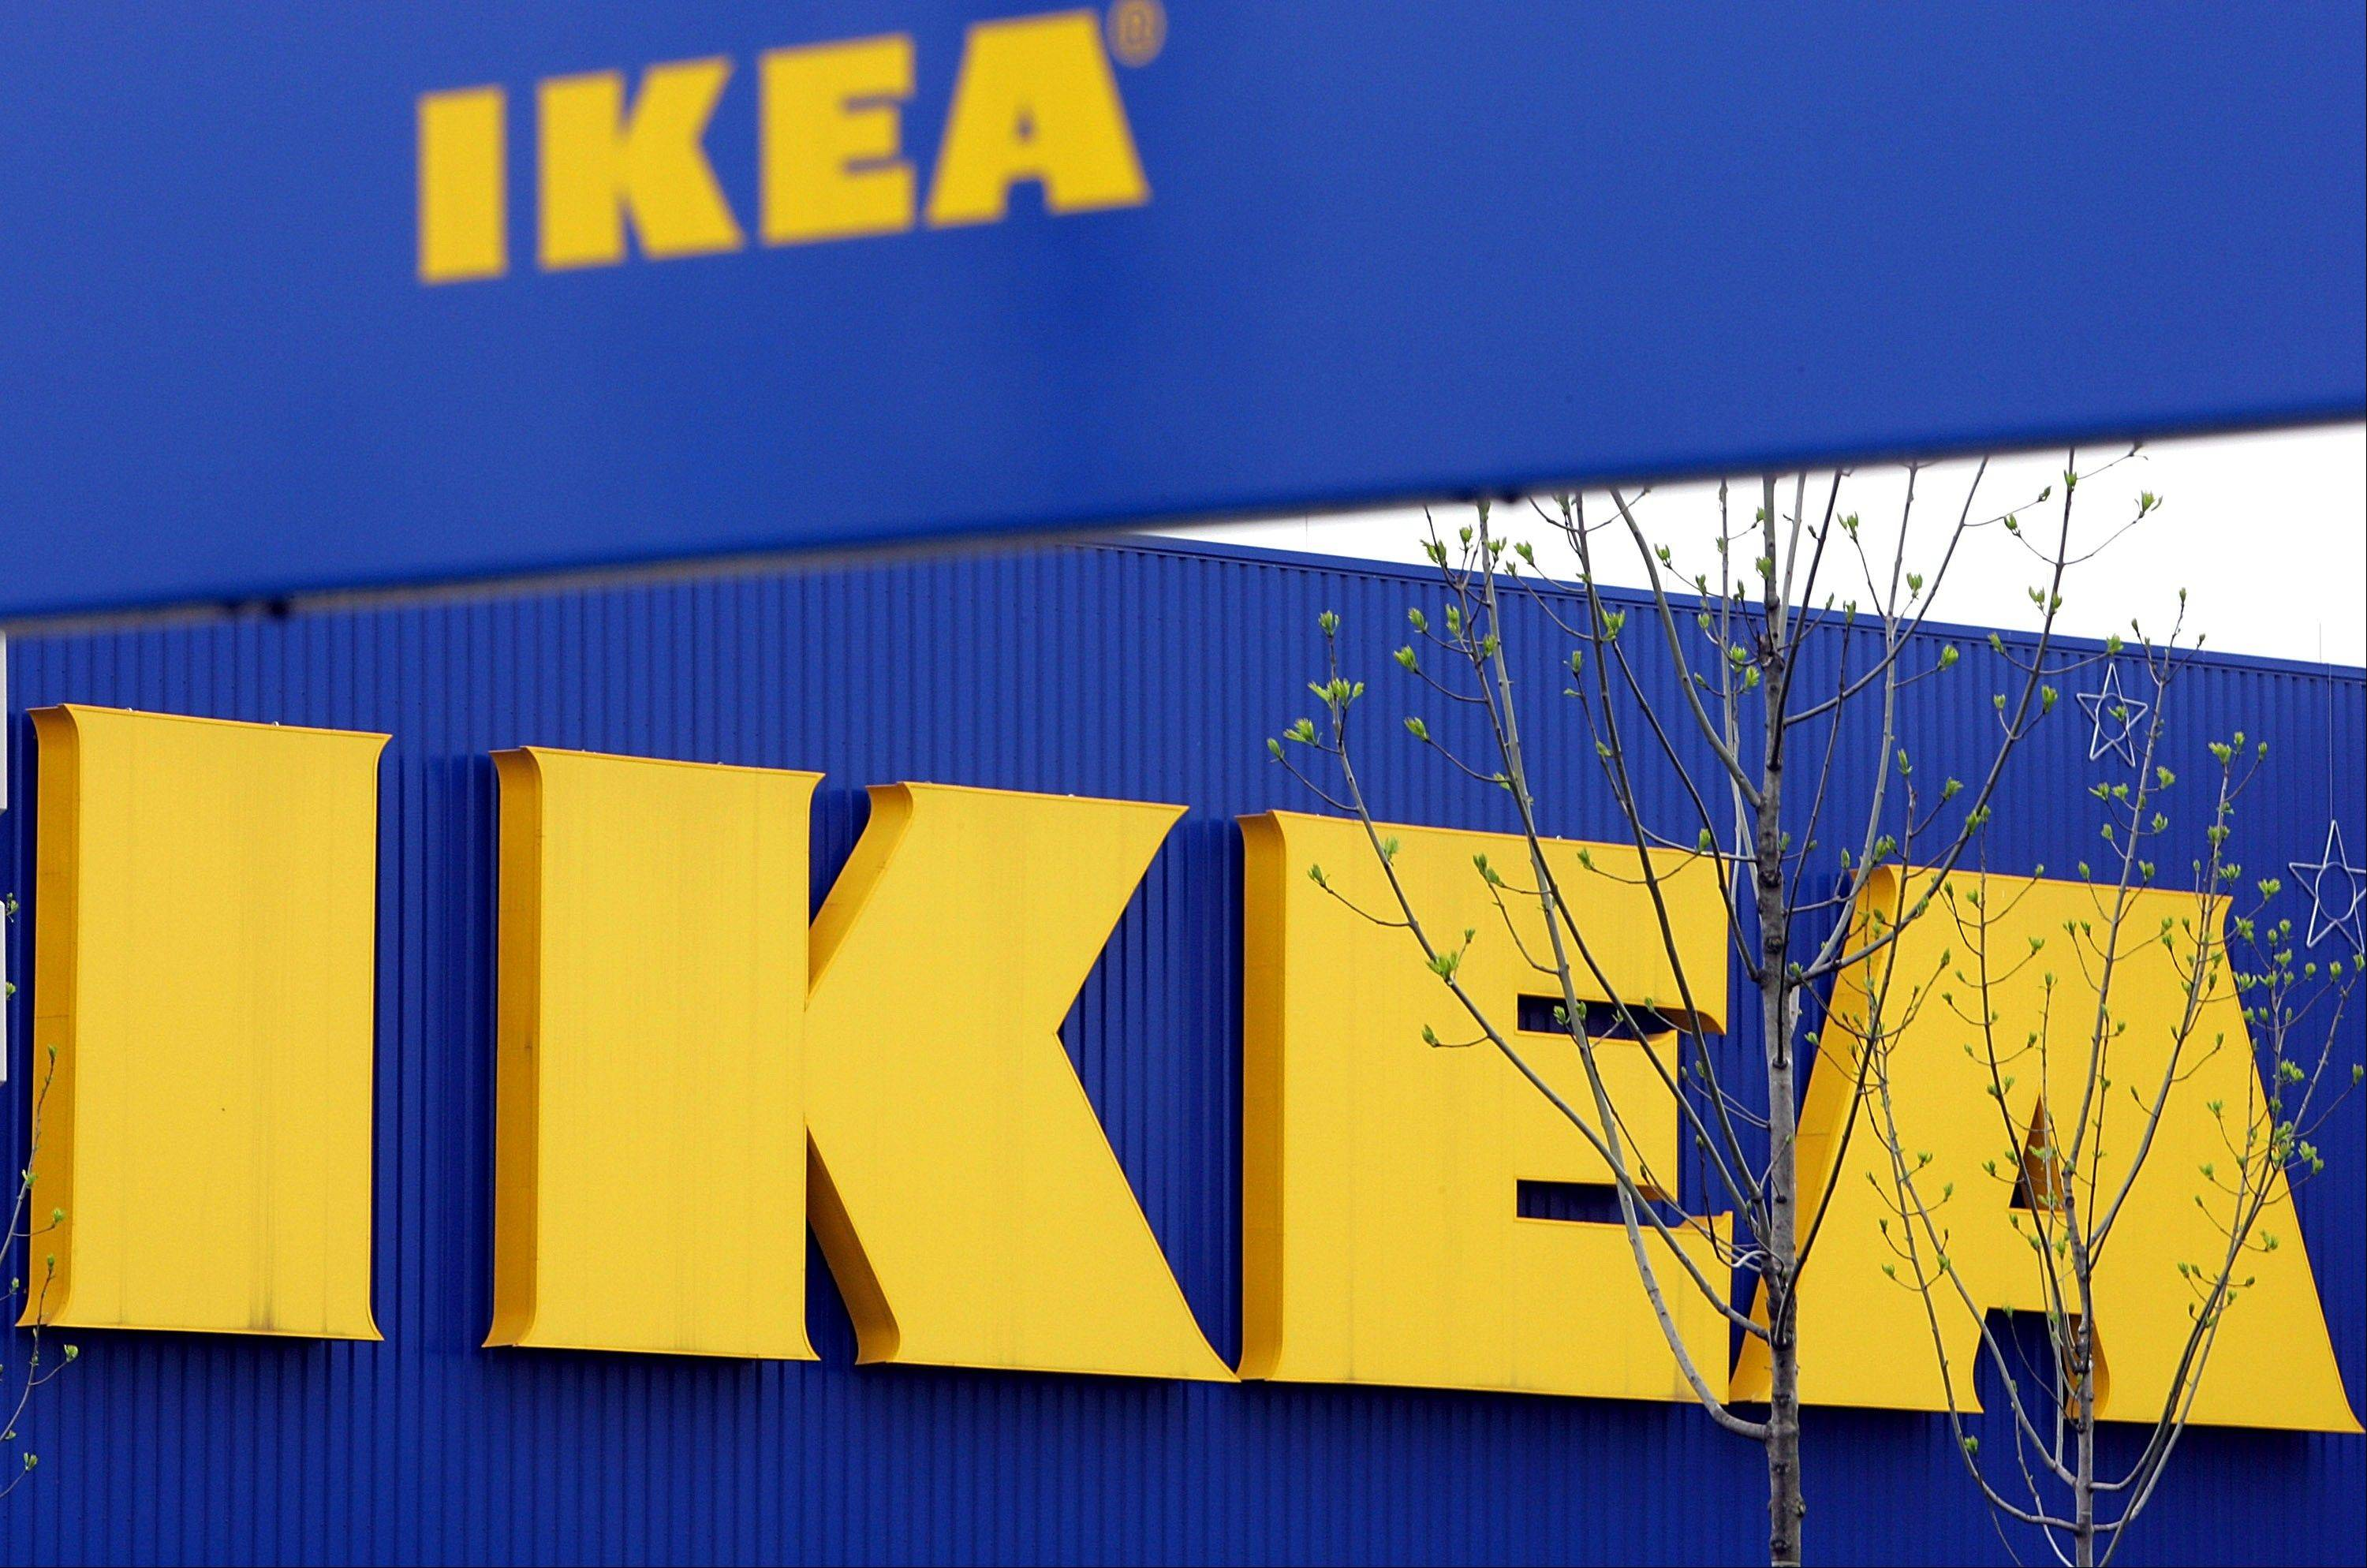 Associated Press/April 27, 2006Horse meat found in meat balls has been a headache for Ikea. Meanwhile, many animal humane groups and public officials are outraged at the idea of resuming domestic horse slaughter, including New Mexico Gov. Susana Martinez.